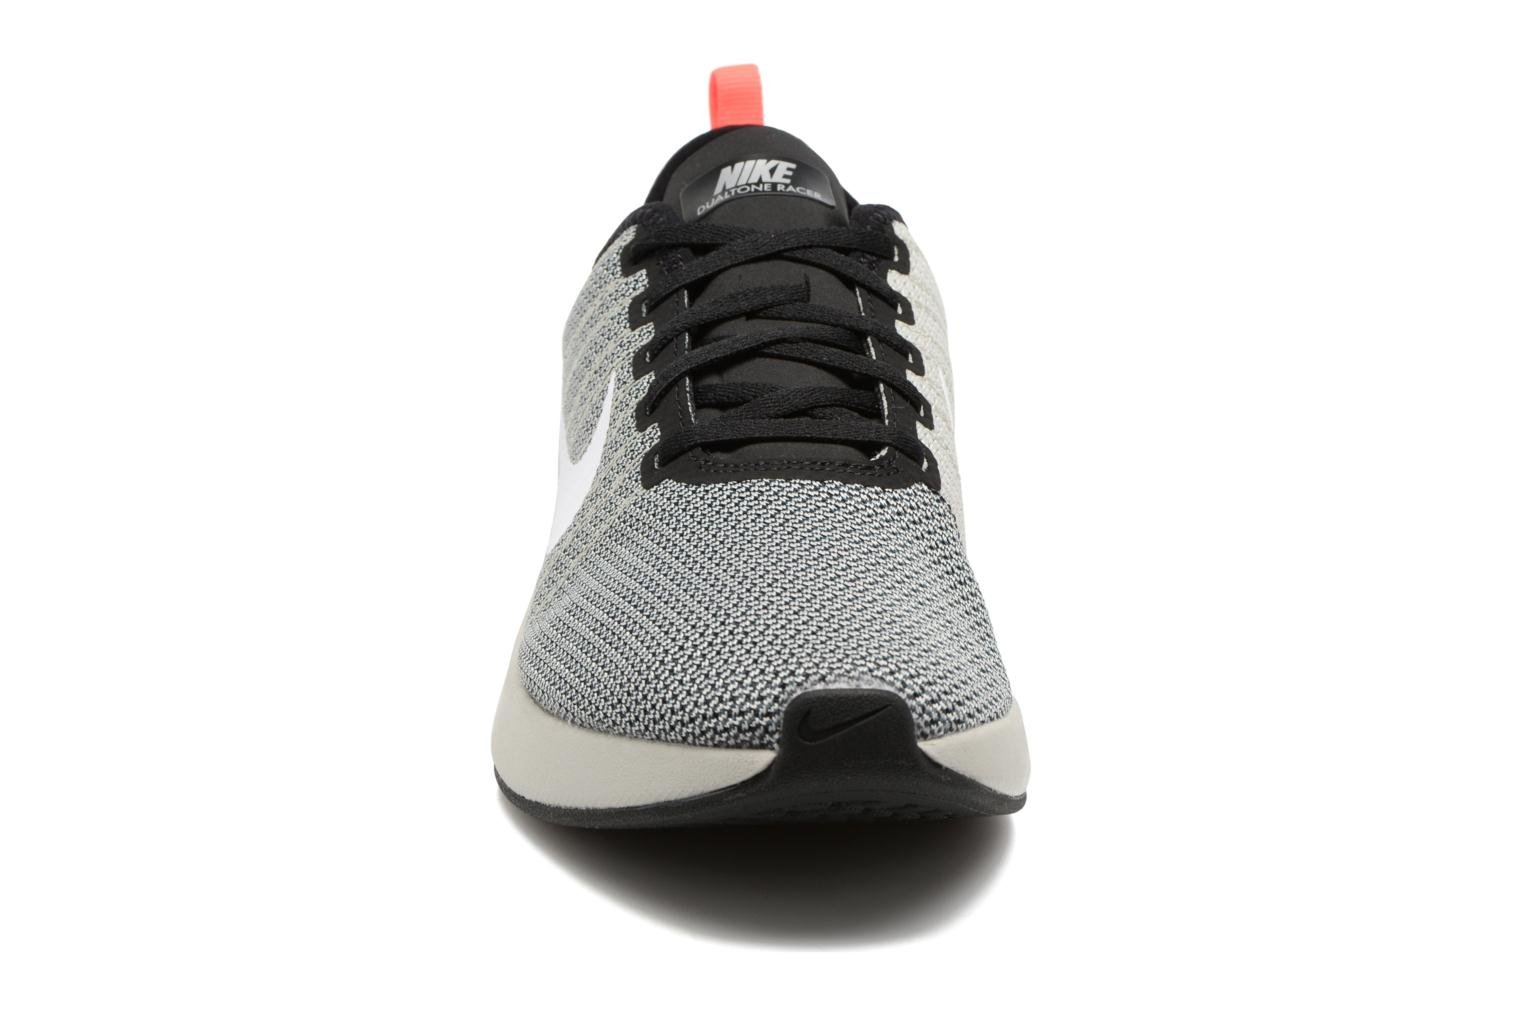 Nike Dualtone Racer Black/White-Pale Grey-Solar Red